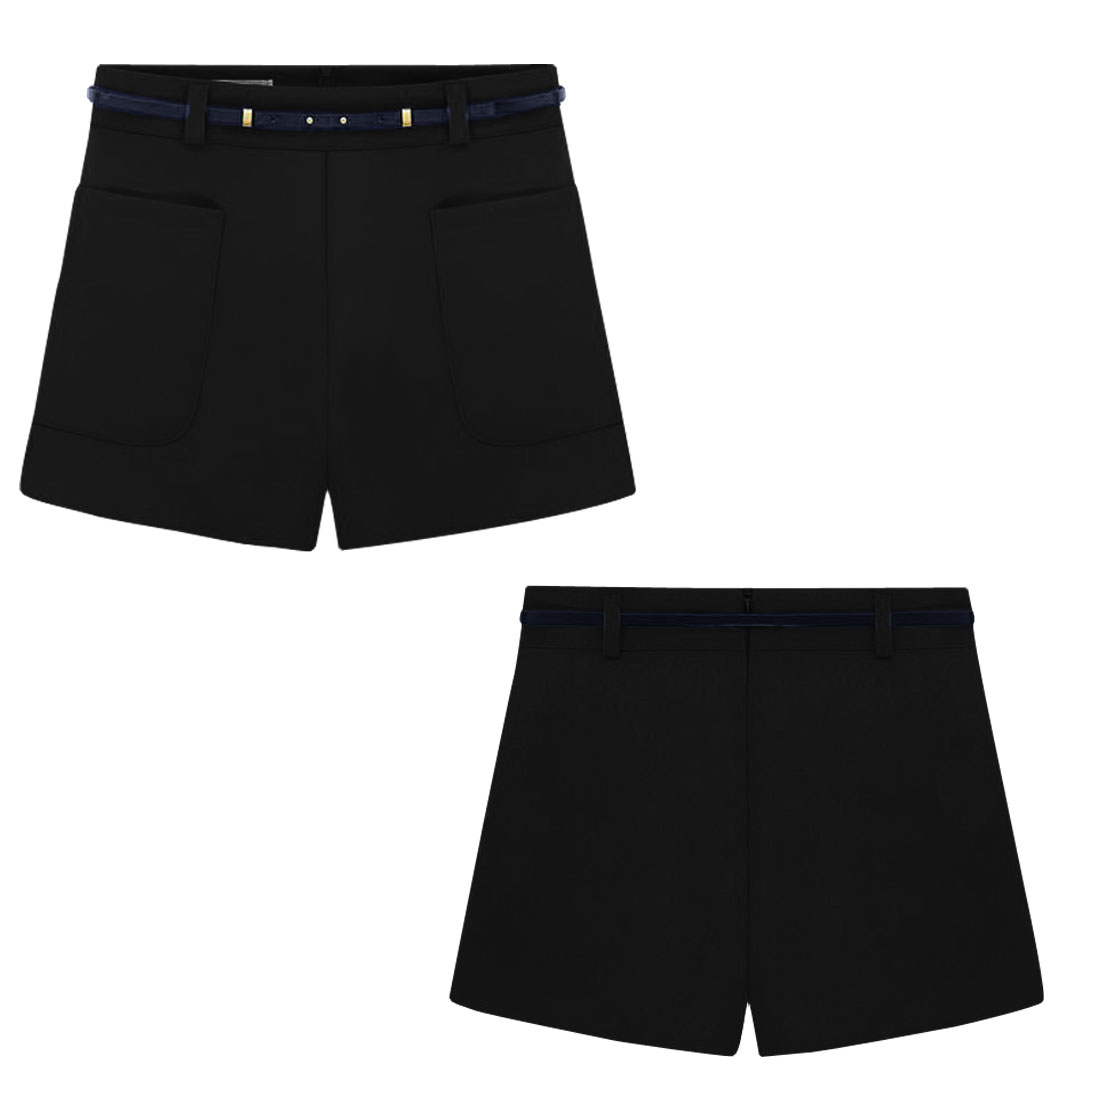 Woman Newly Two Front Patch Pockets Design Pure Black Casual Shorts M